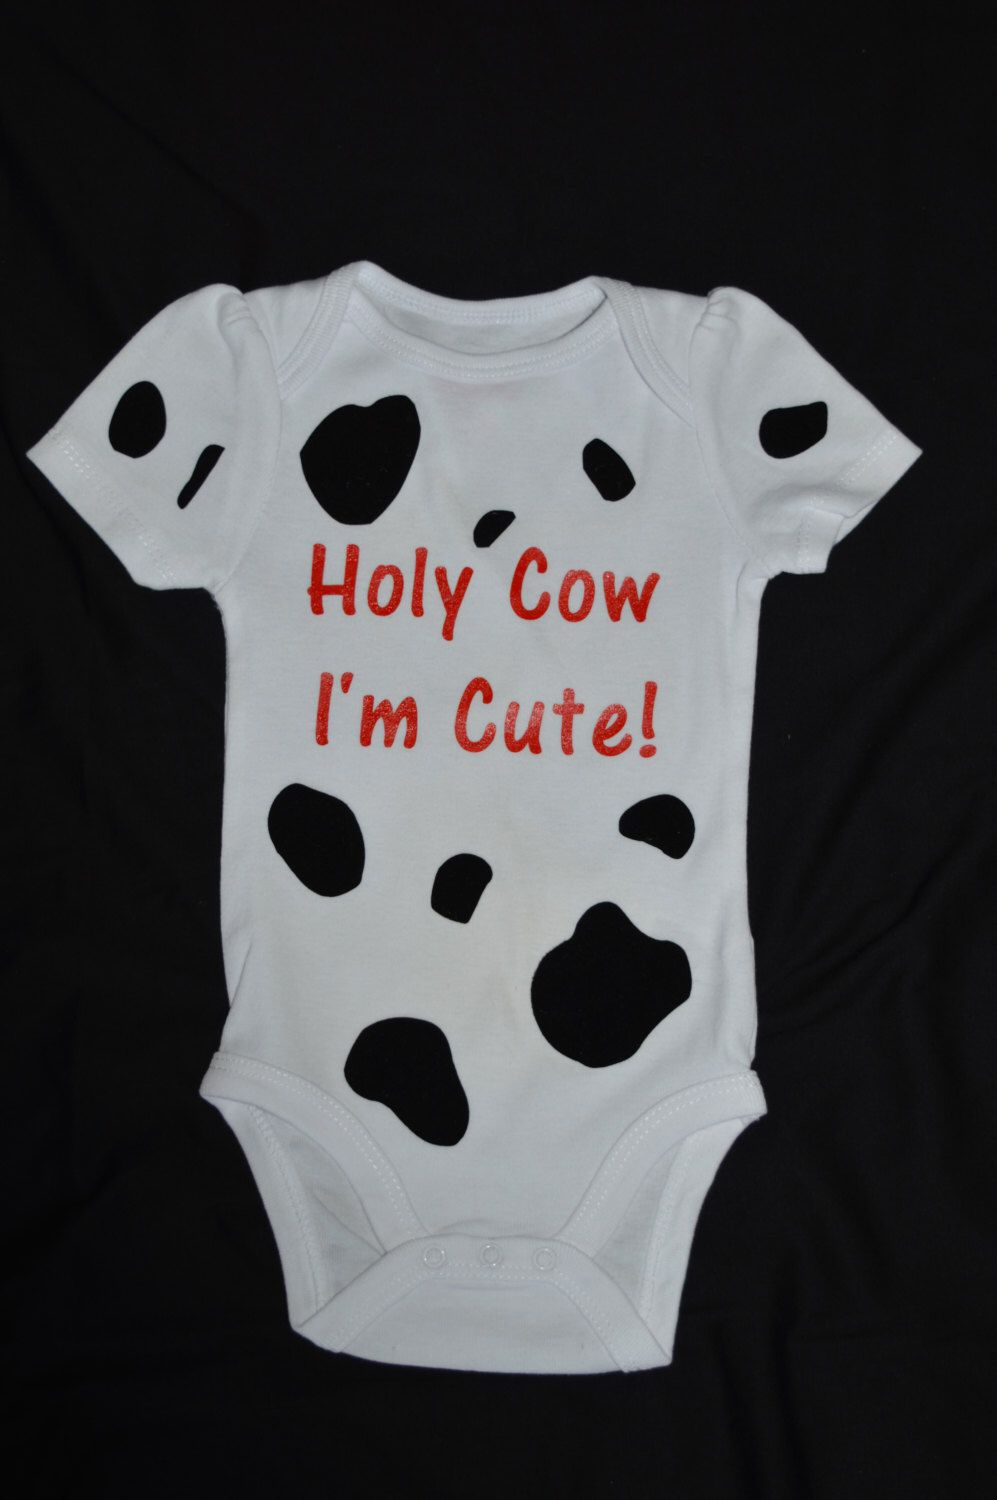 61275210d Holy Cow, I'm Cute! Infant Onesie by ZudZagInnovations on Etsy https: